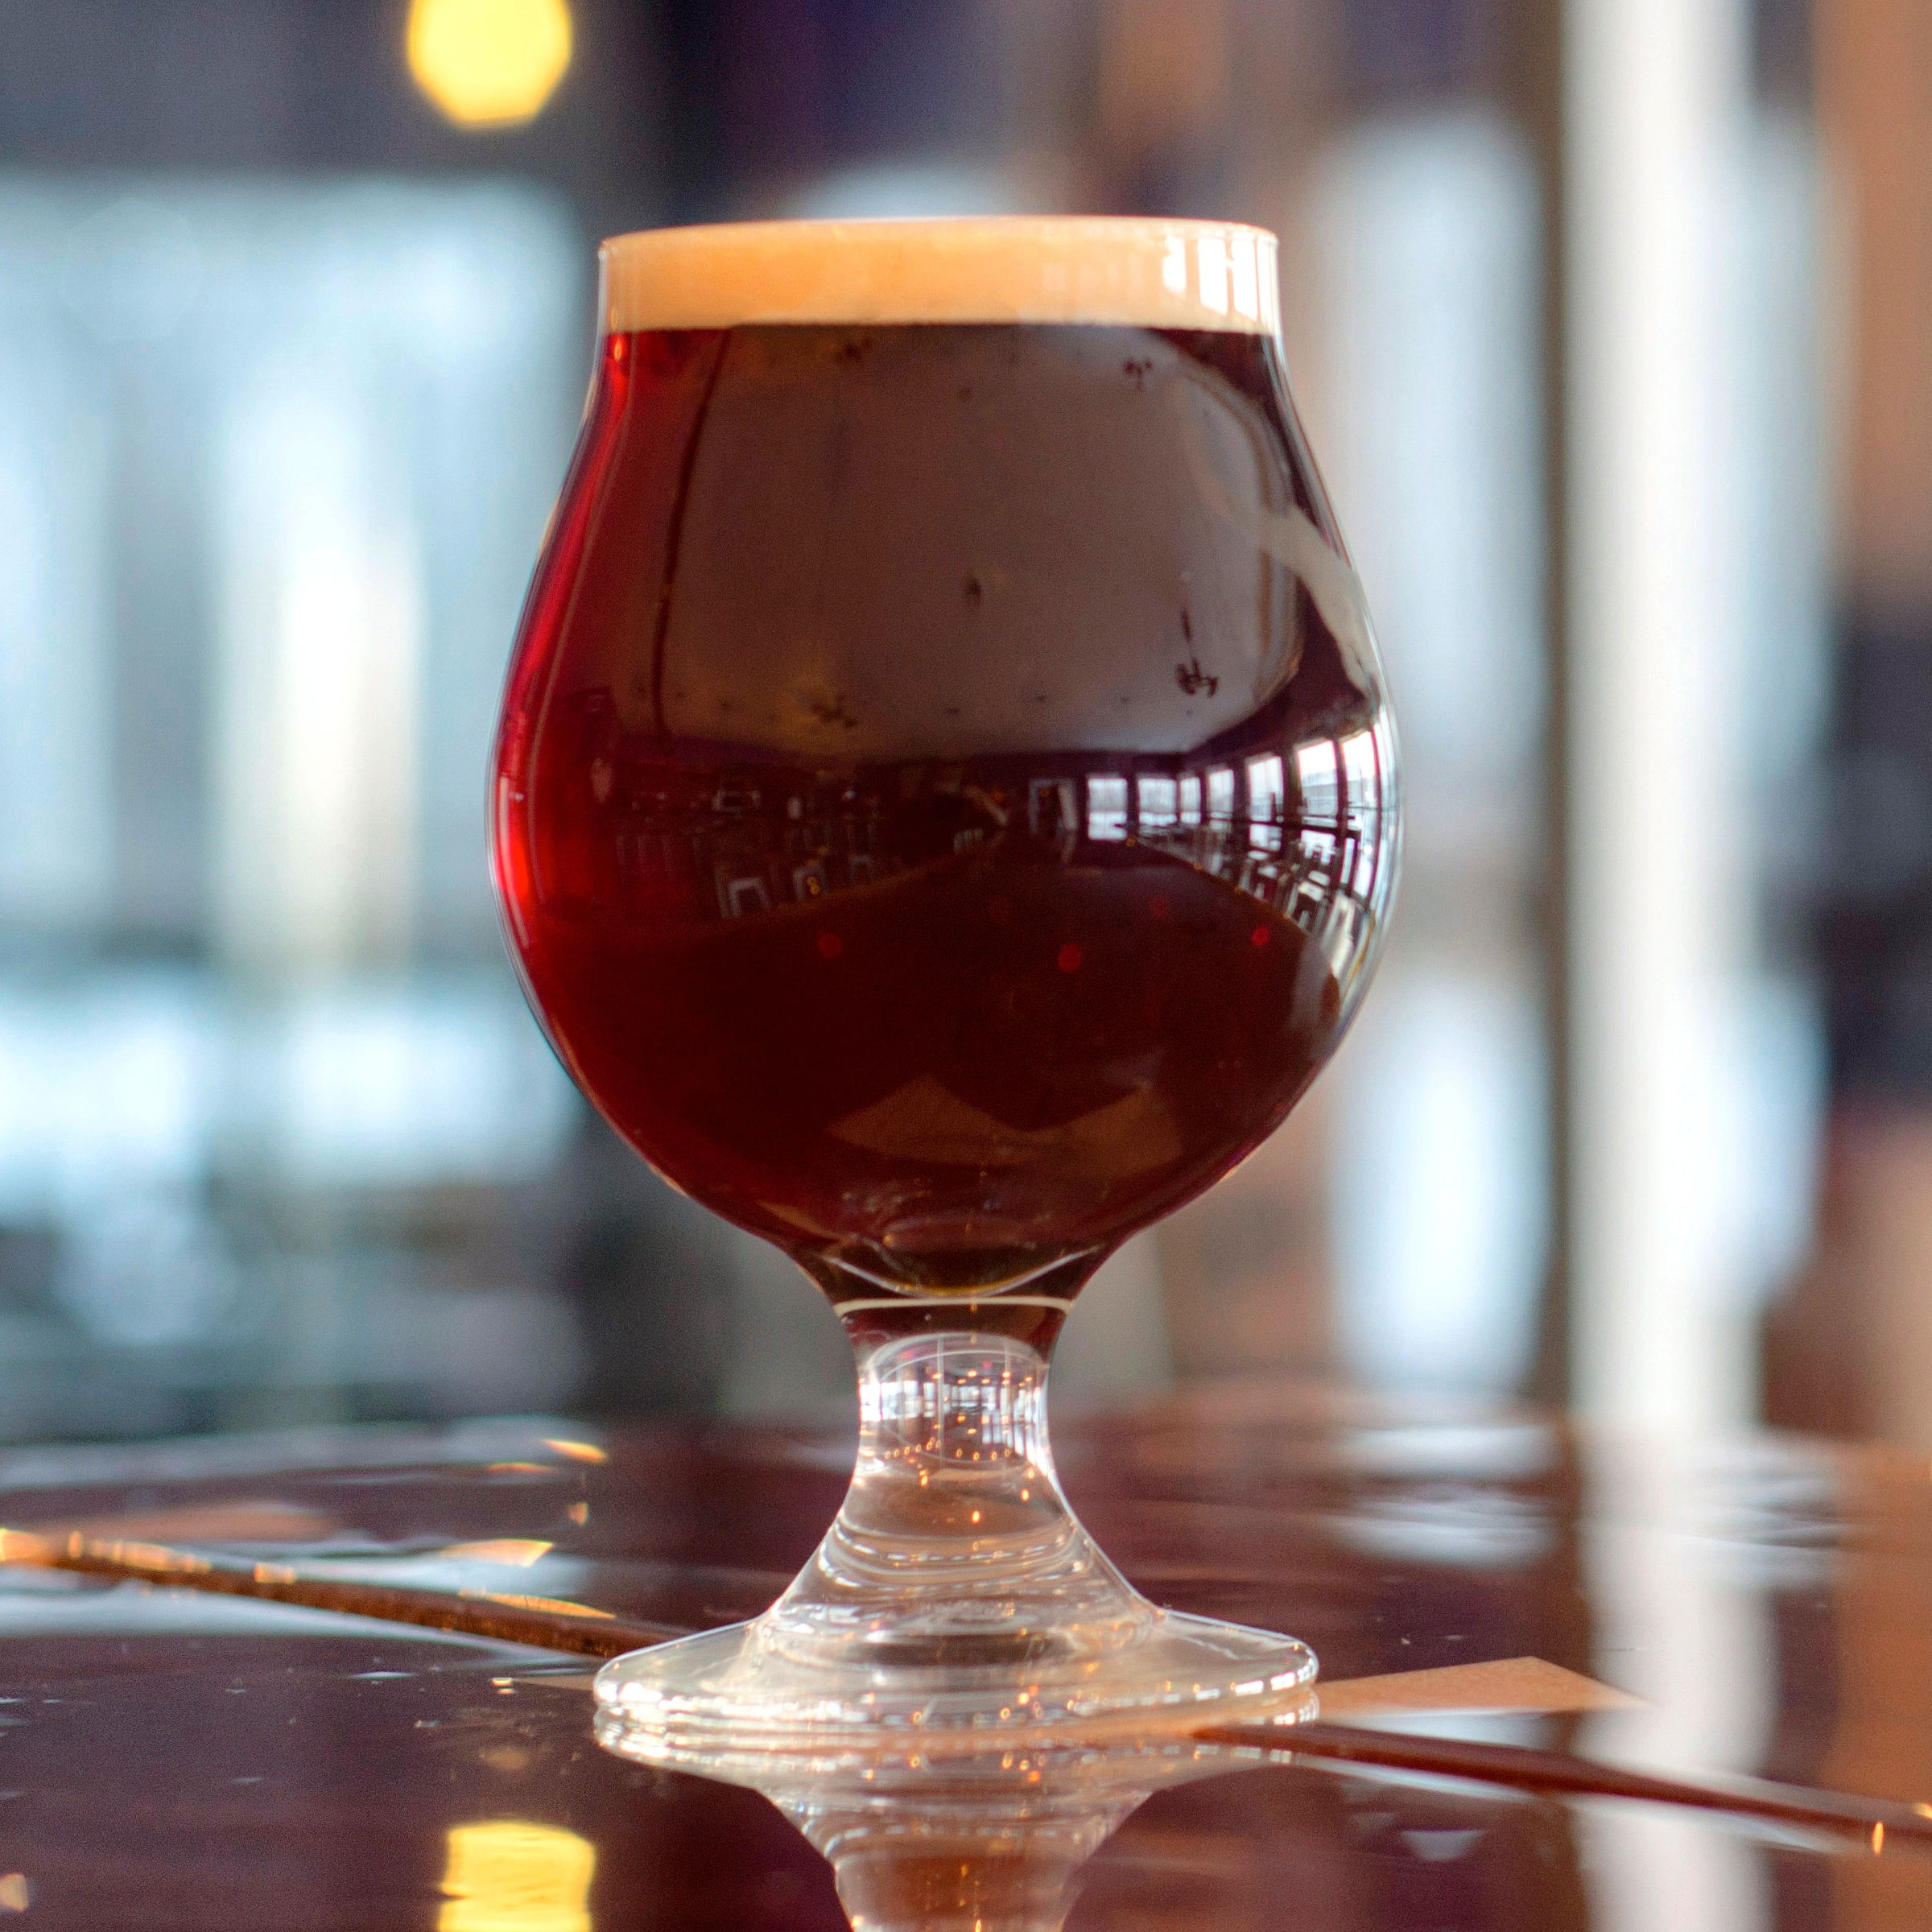 """Seiche Scottish Ale (say-sh) - """"Wee-Heavy Scottish Ale"""" 8.6% ABV, 20° Plato, 14.3 IBU Our Strong Scottish Ale has a rich and malty sweet flavor with ever-so-slight bittering provided by East Kent Goldings hops. Seiche is clear and coppery in appearance, with a medium mouthfeel that understates the alcohol content. Named for an oscillating wave, similar to a tidal wave, that occurs in enclosed or partially enclosed bodies of water after atmospheric disturbances... a marine phenomenon that has been documented on Lake Erie as recently as January 2019."""